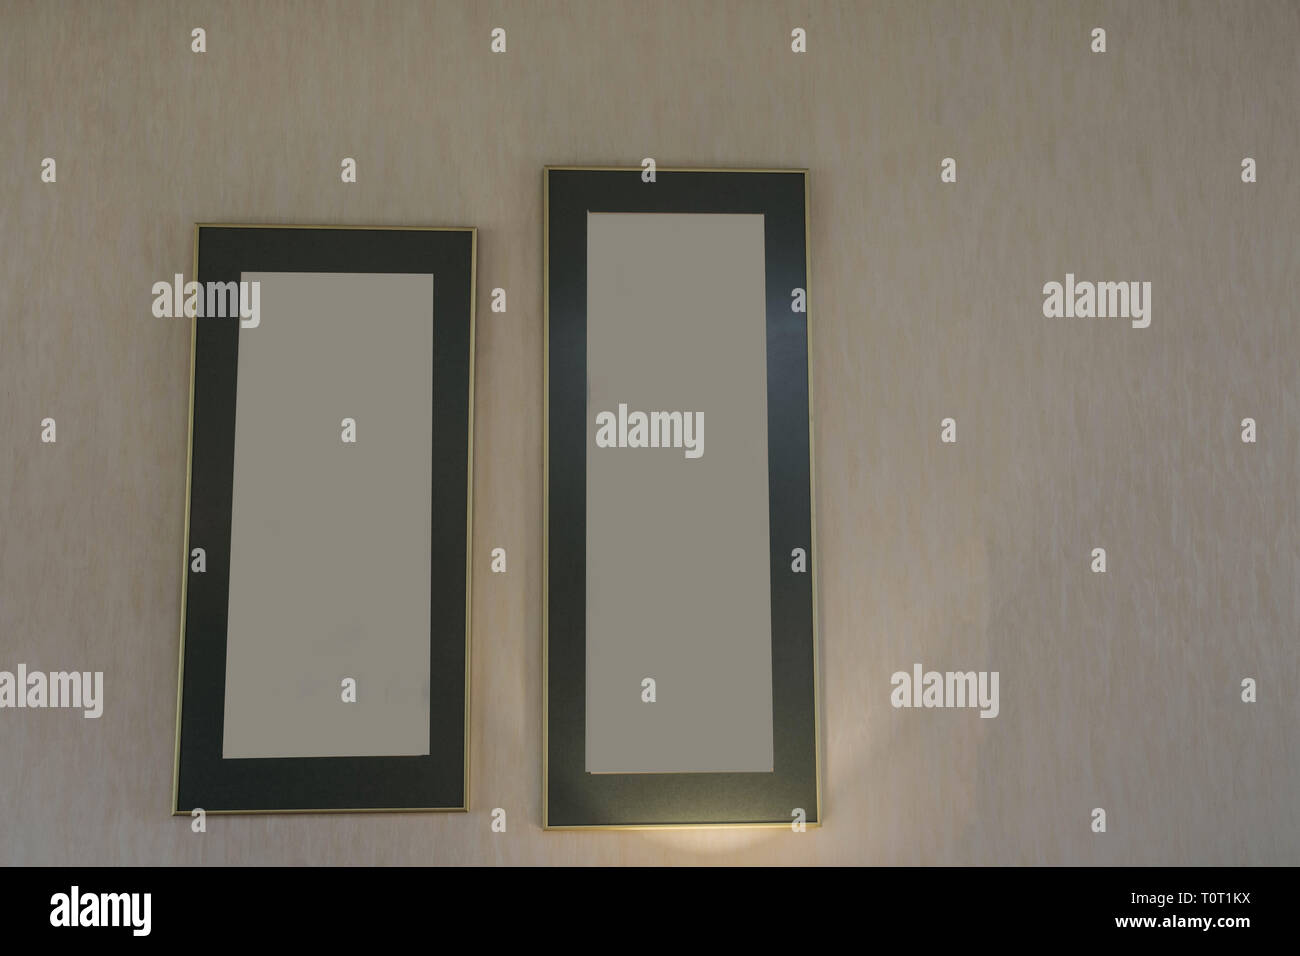 Two Blank frames on the wall, space for text - Stock Image